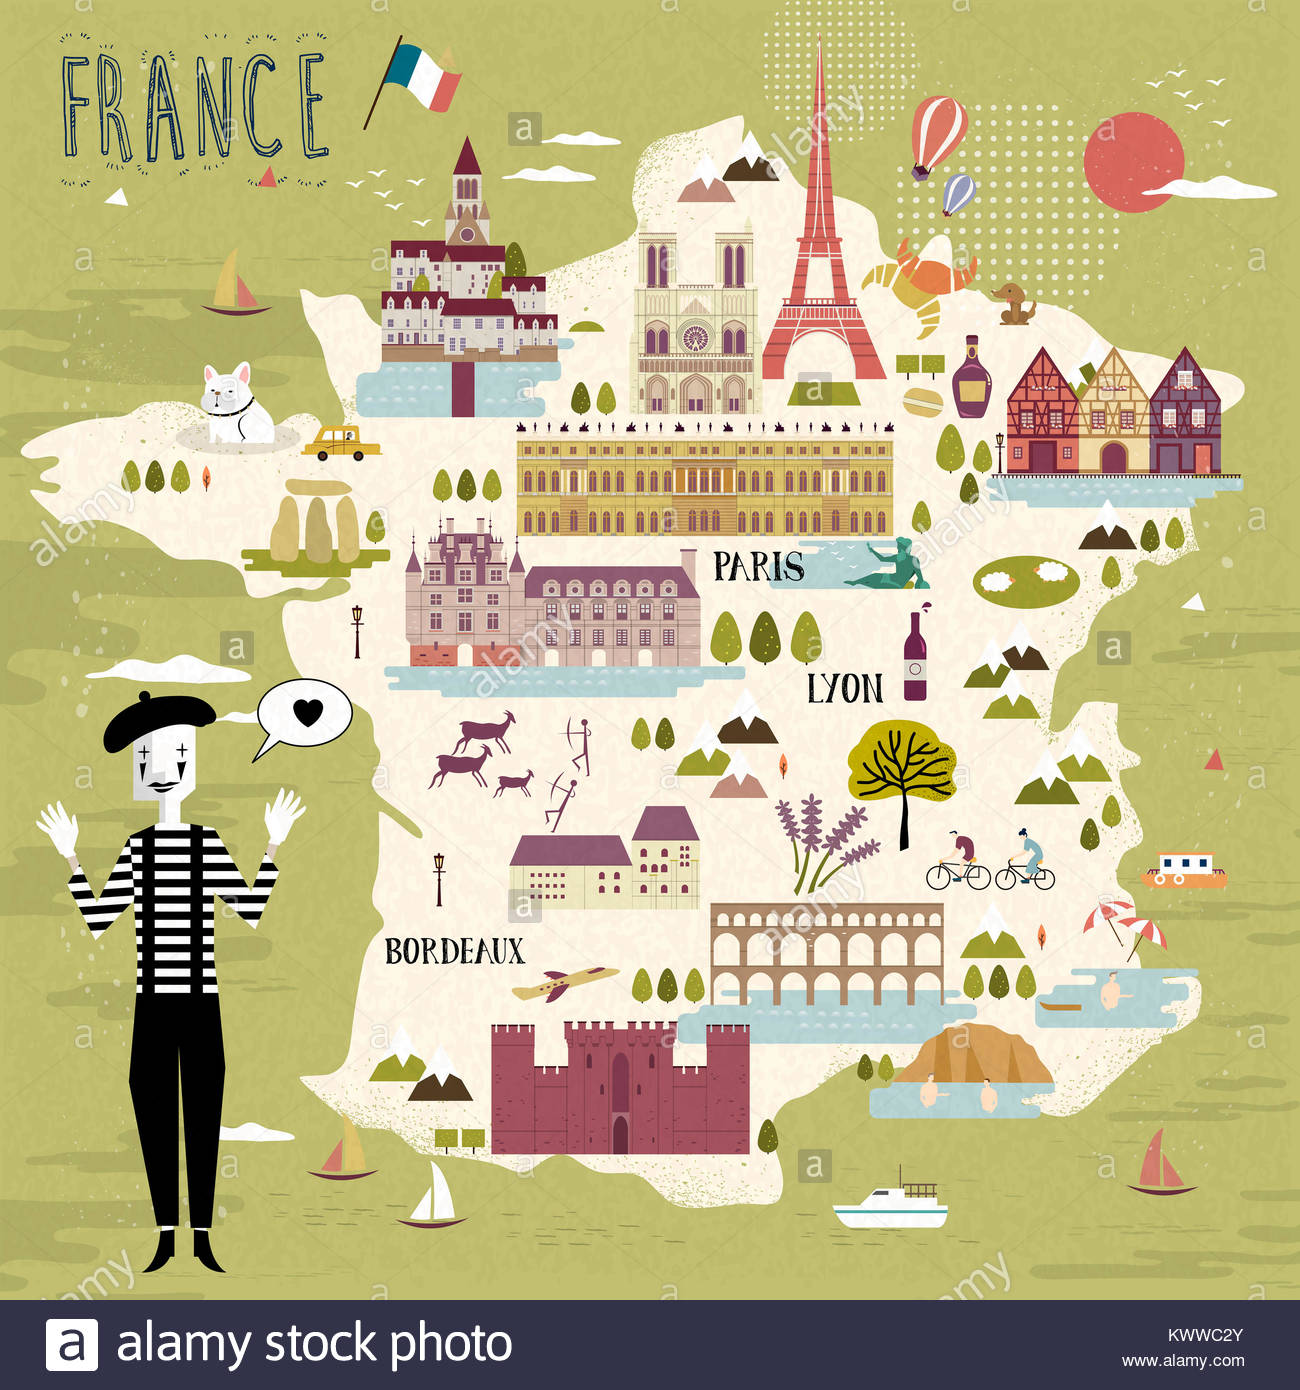 adorable france travel map with attractions and specialties stock